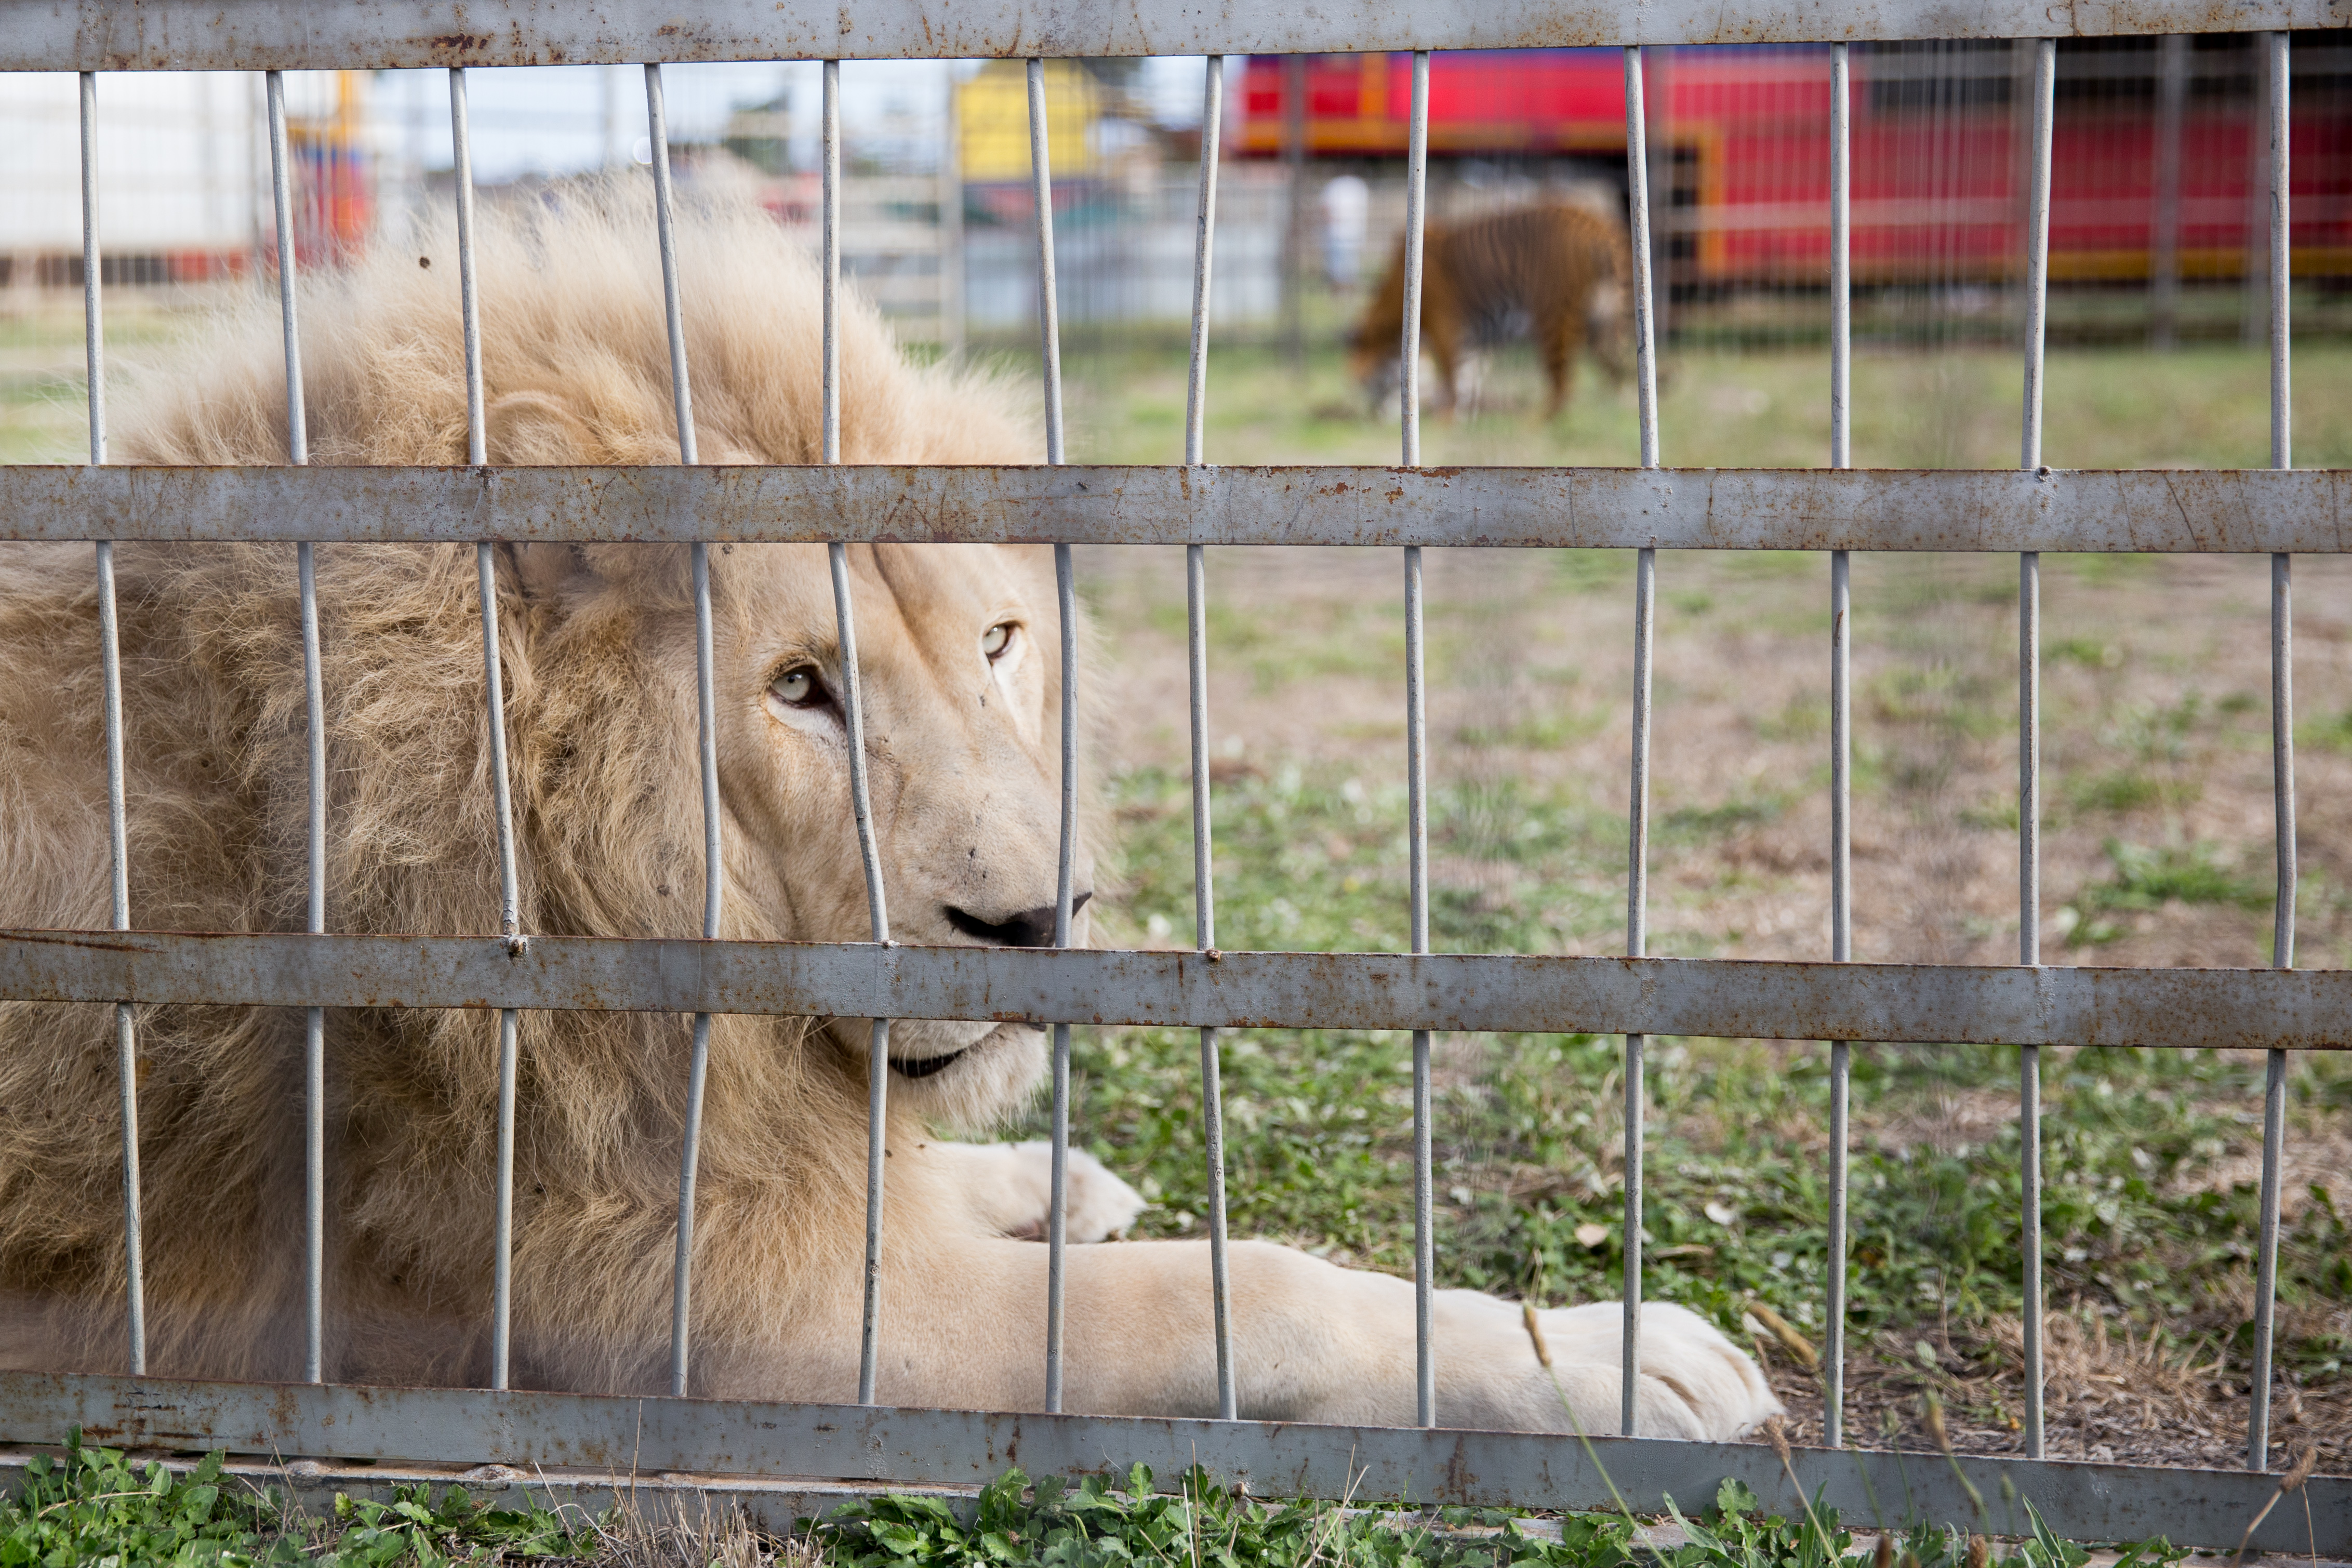 Circus animals: part of a magical world, or the victims of